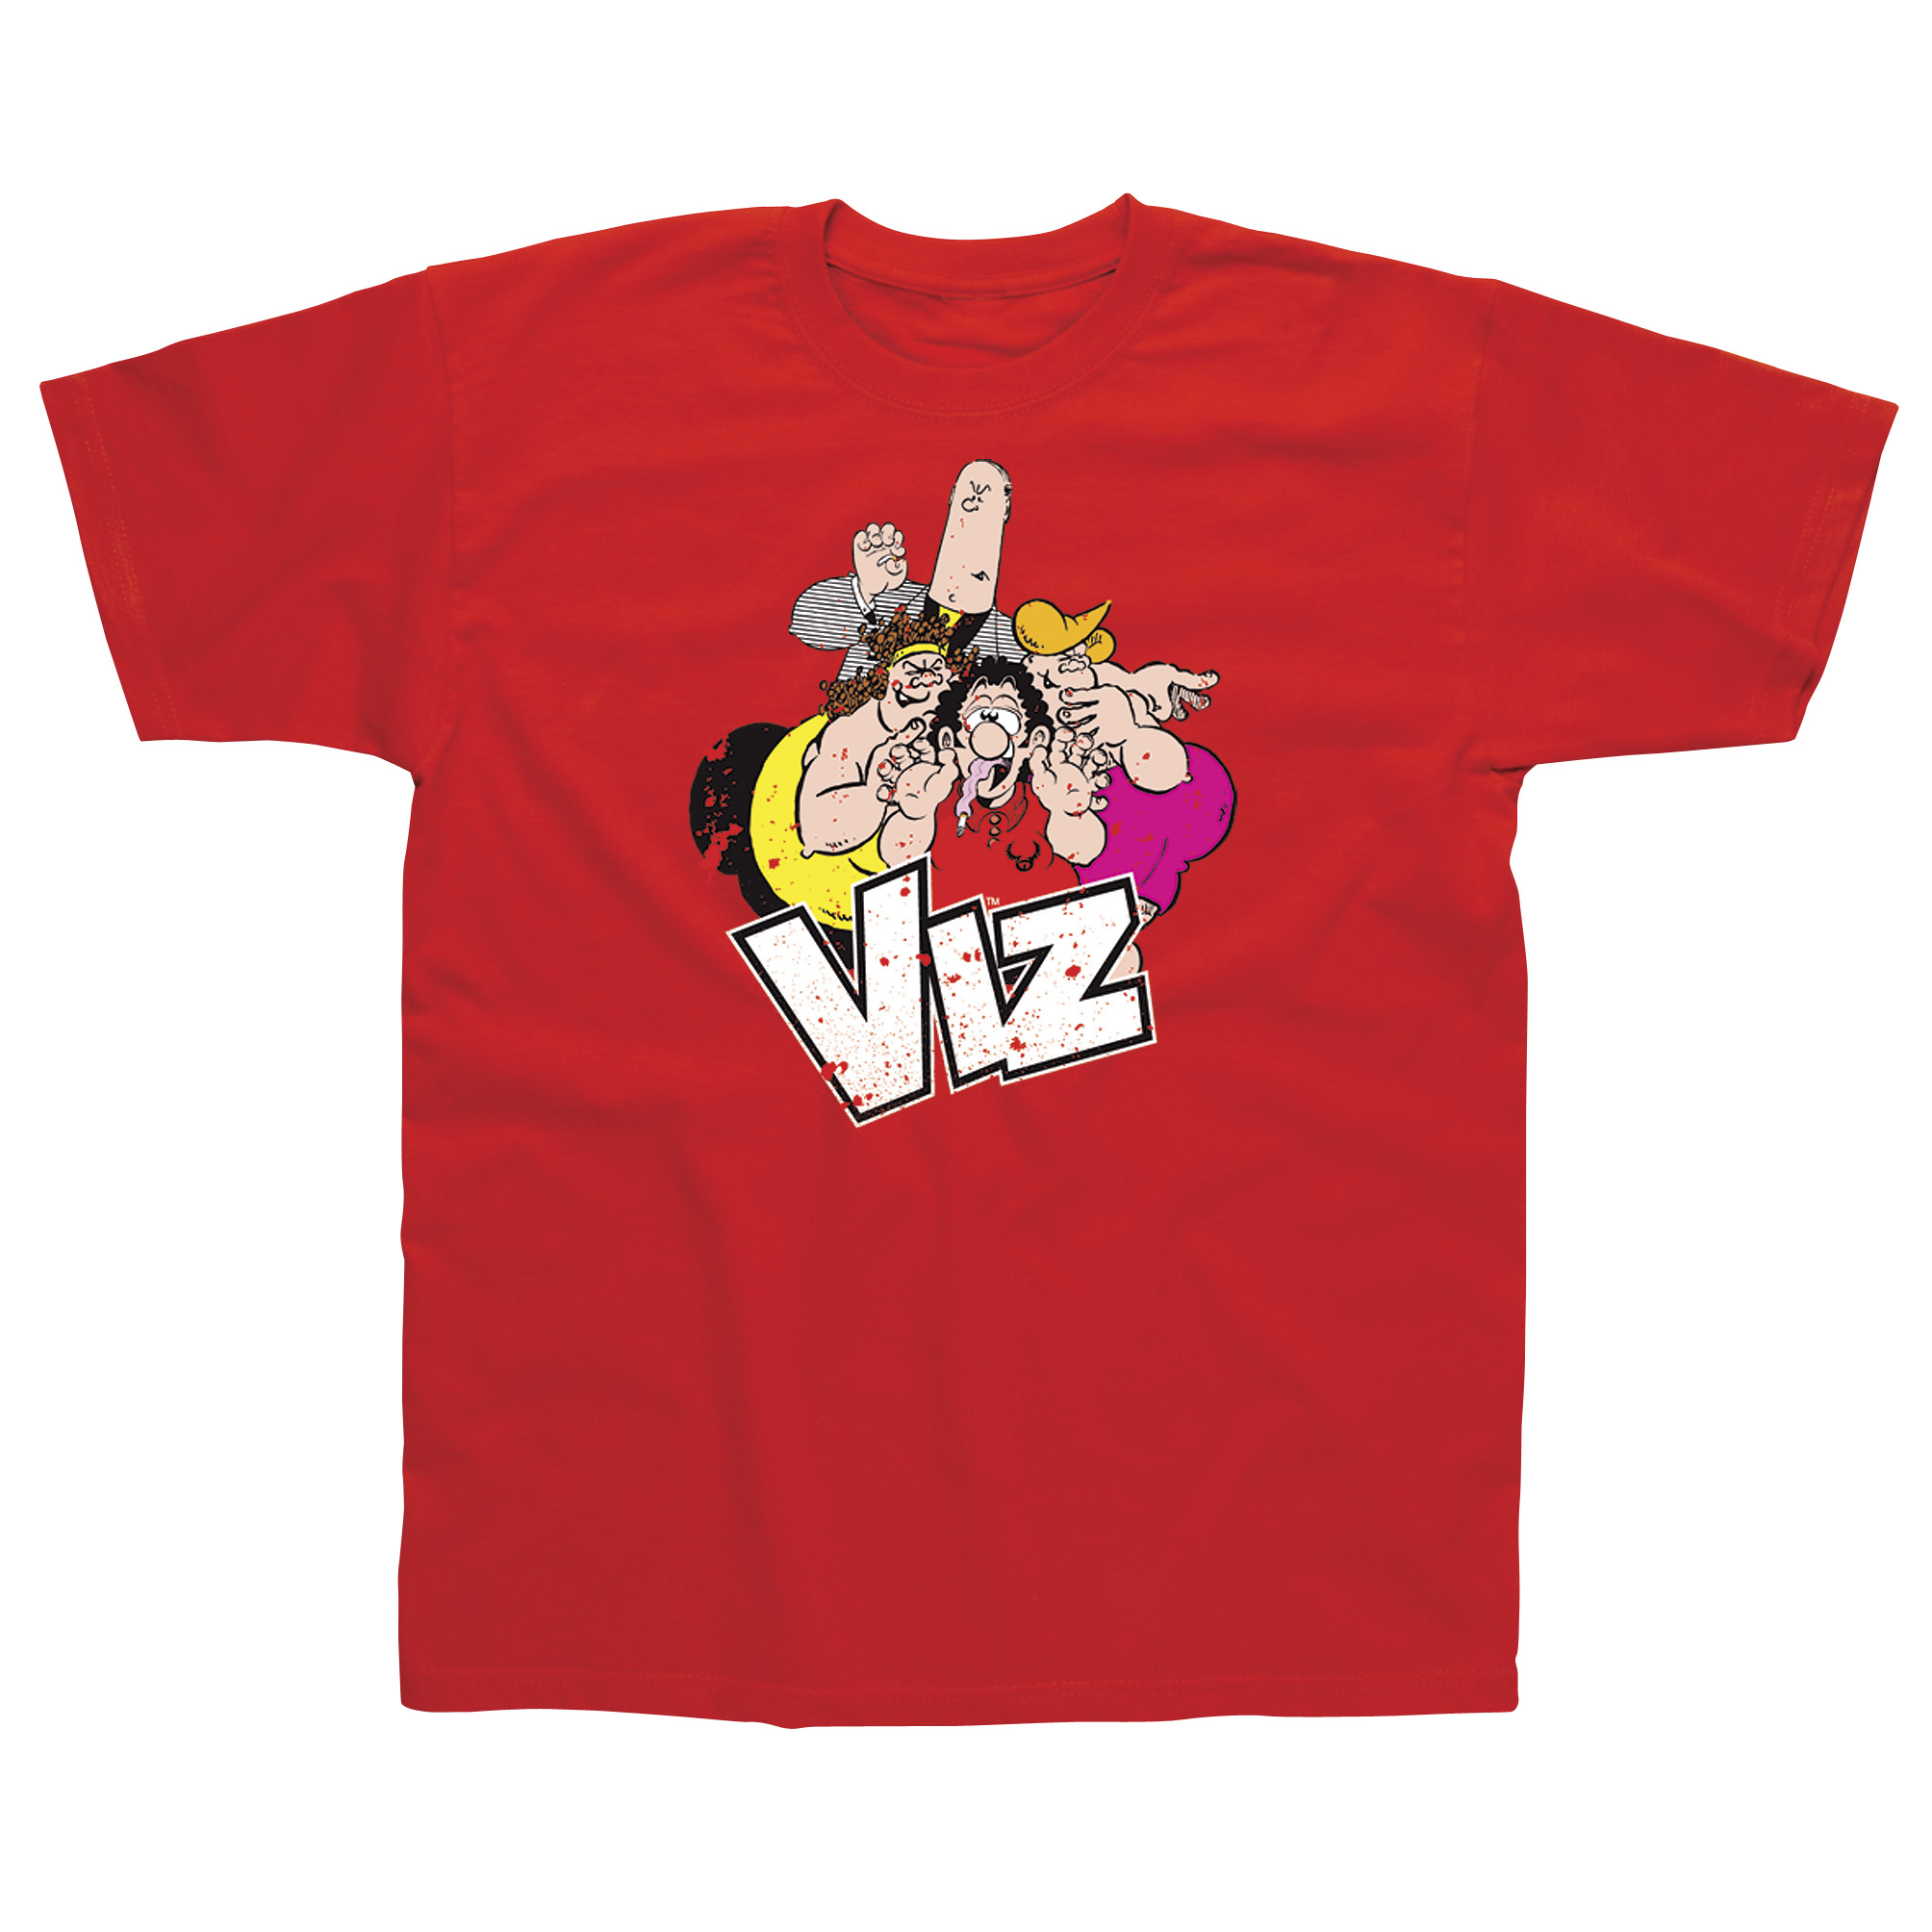 Viz group red t shirt xx large best price for The red t shirt company